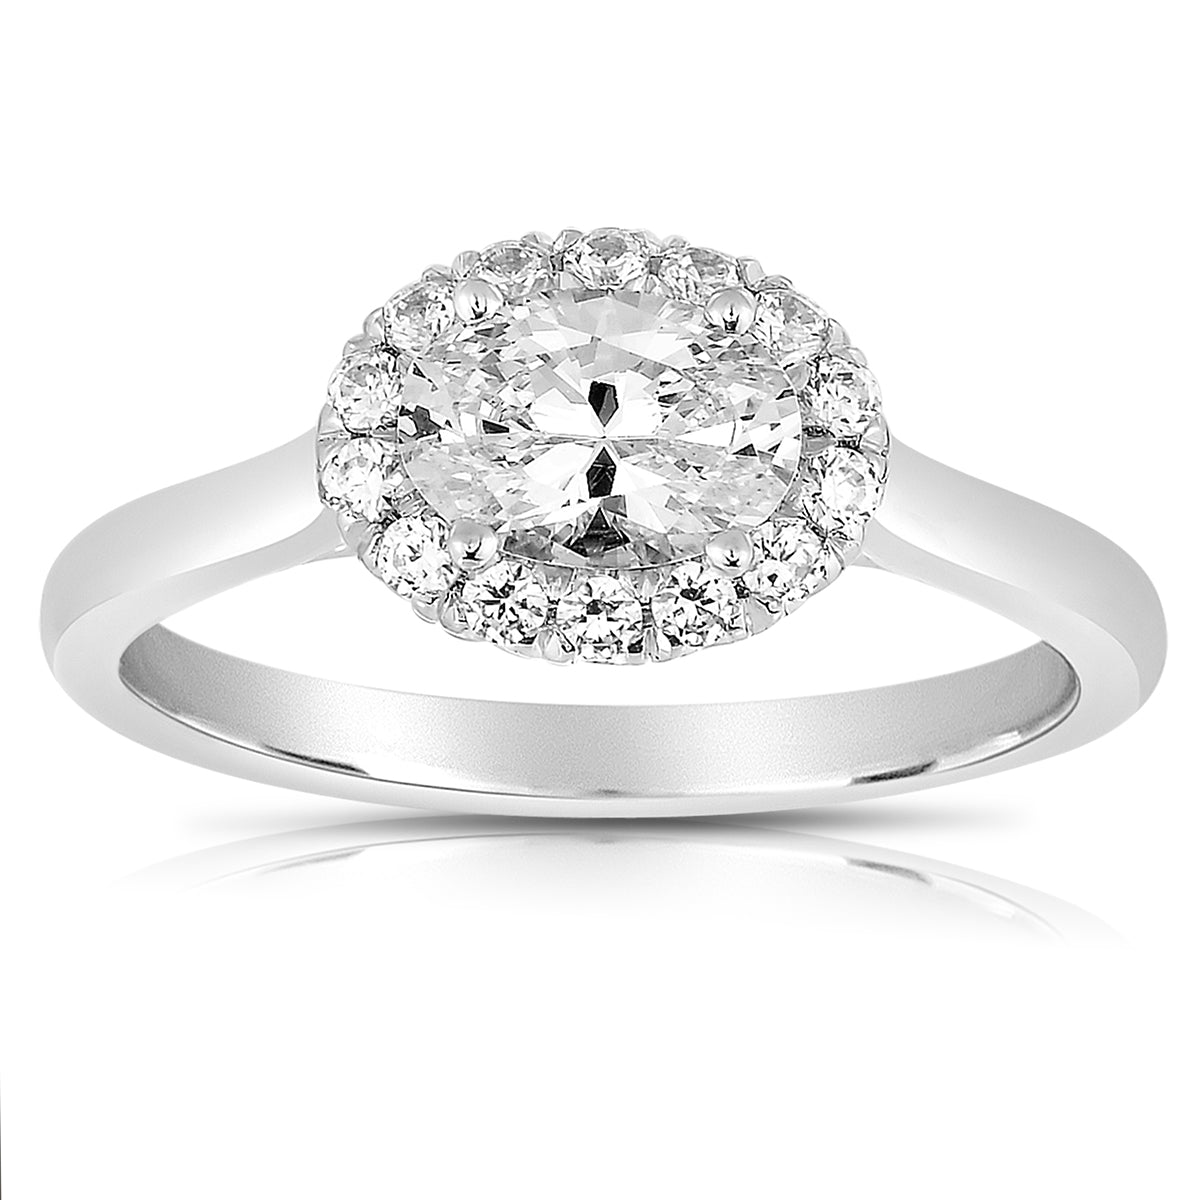 Fink's Exclusive 14K White Gold Sideways Oval Center Stone Diamond Halo Engagement Ring